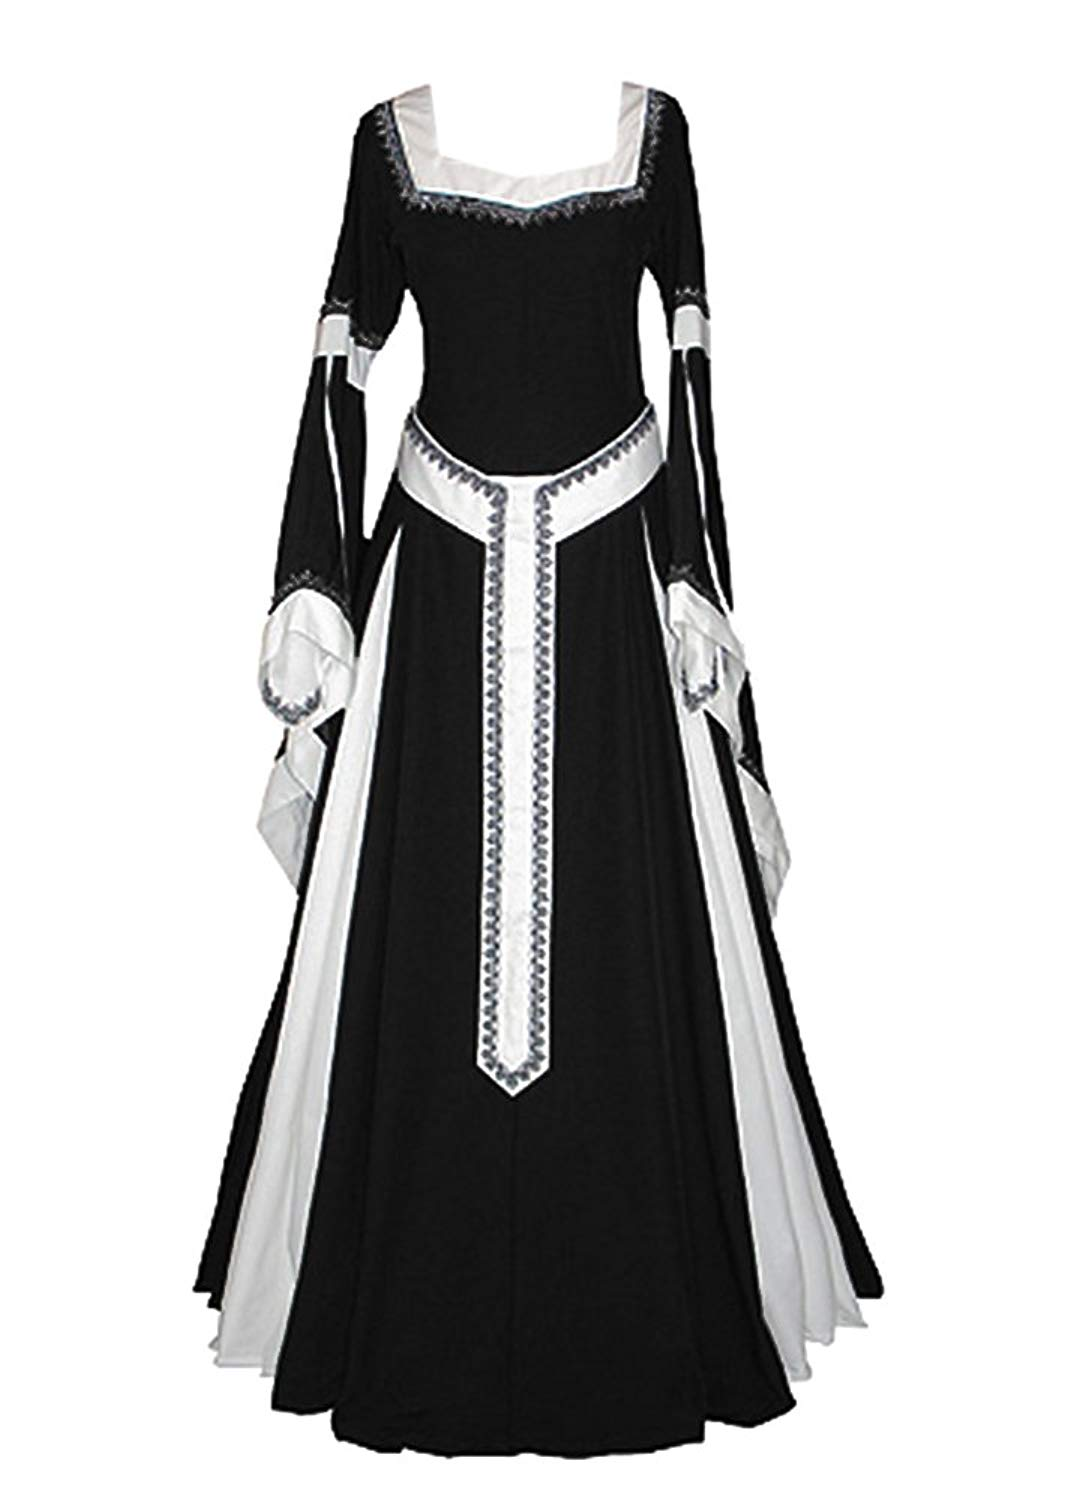 bb7b59d5aa3 Buy Mediaeval Renaissance Sorceress Gown Witch Medieval Fantasy ...